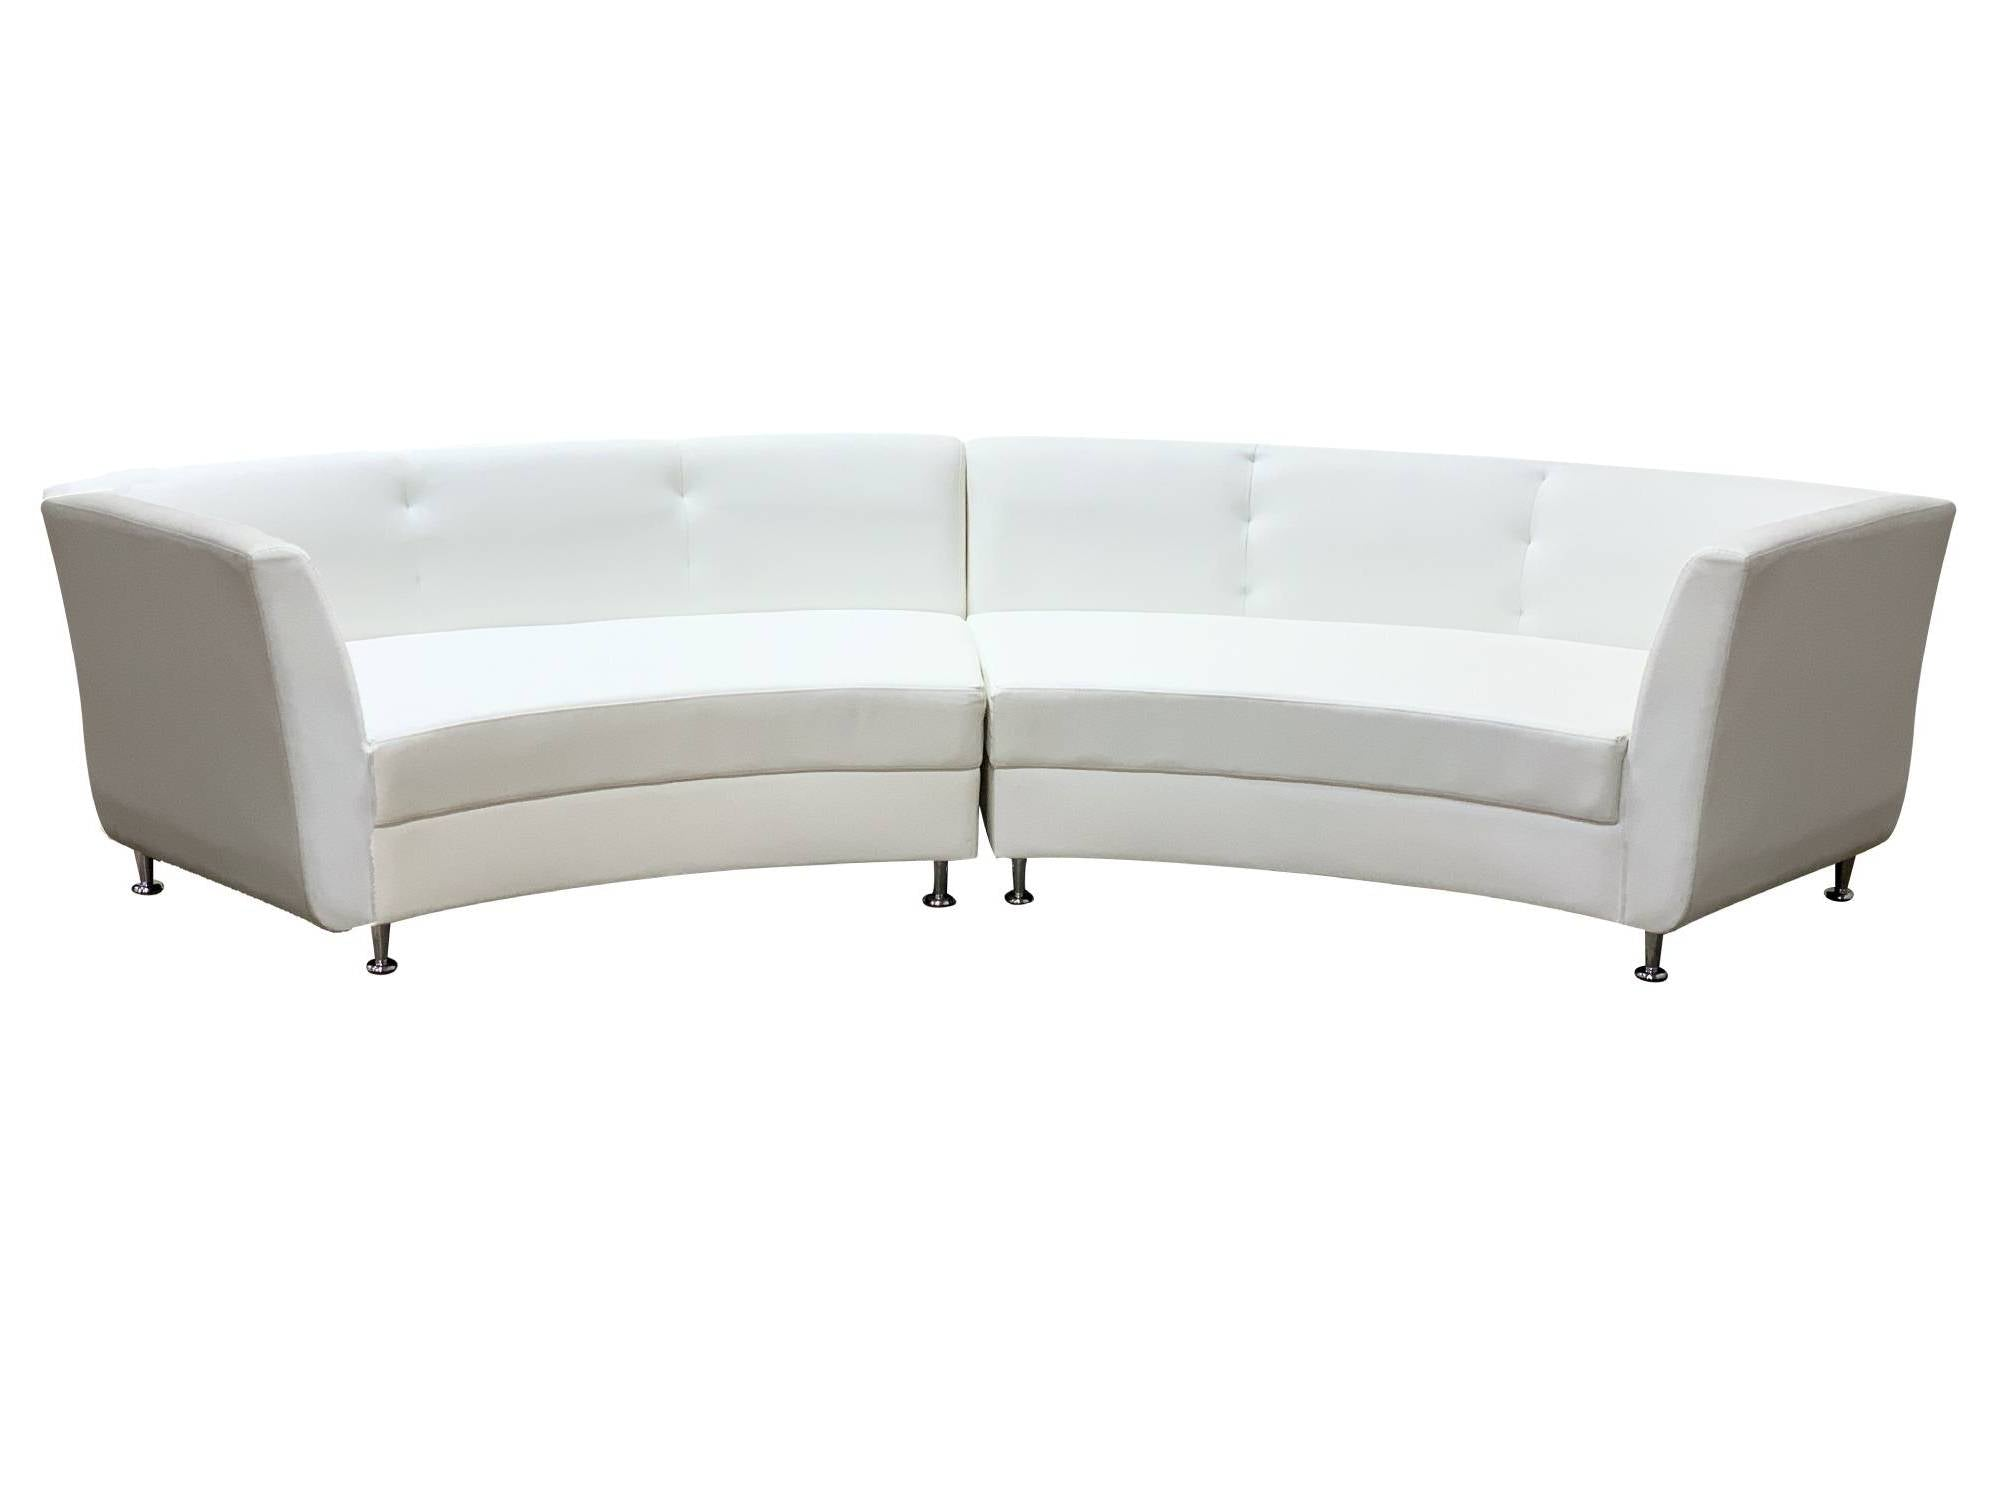 LUXURY 2PC CURVED SOFA - WHITE